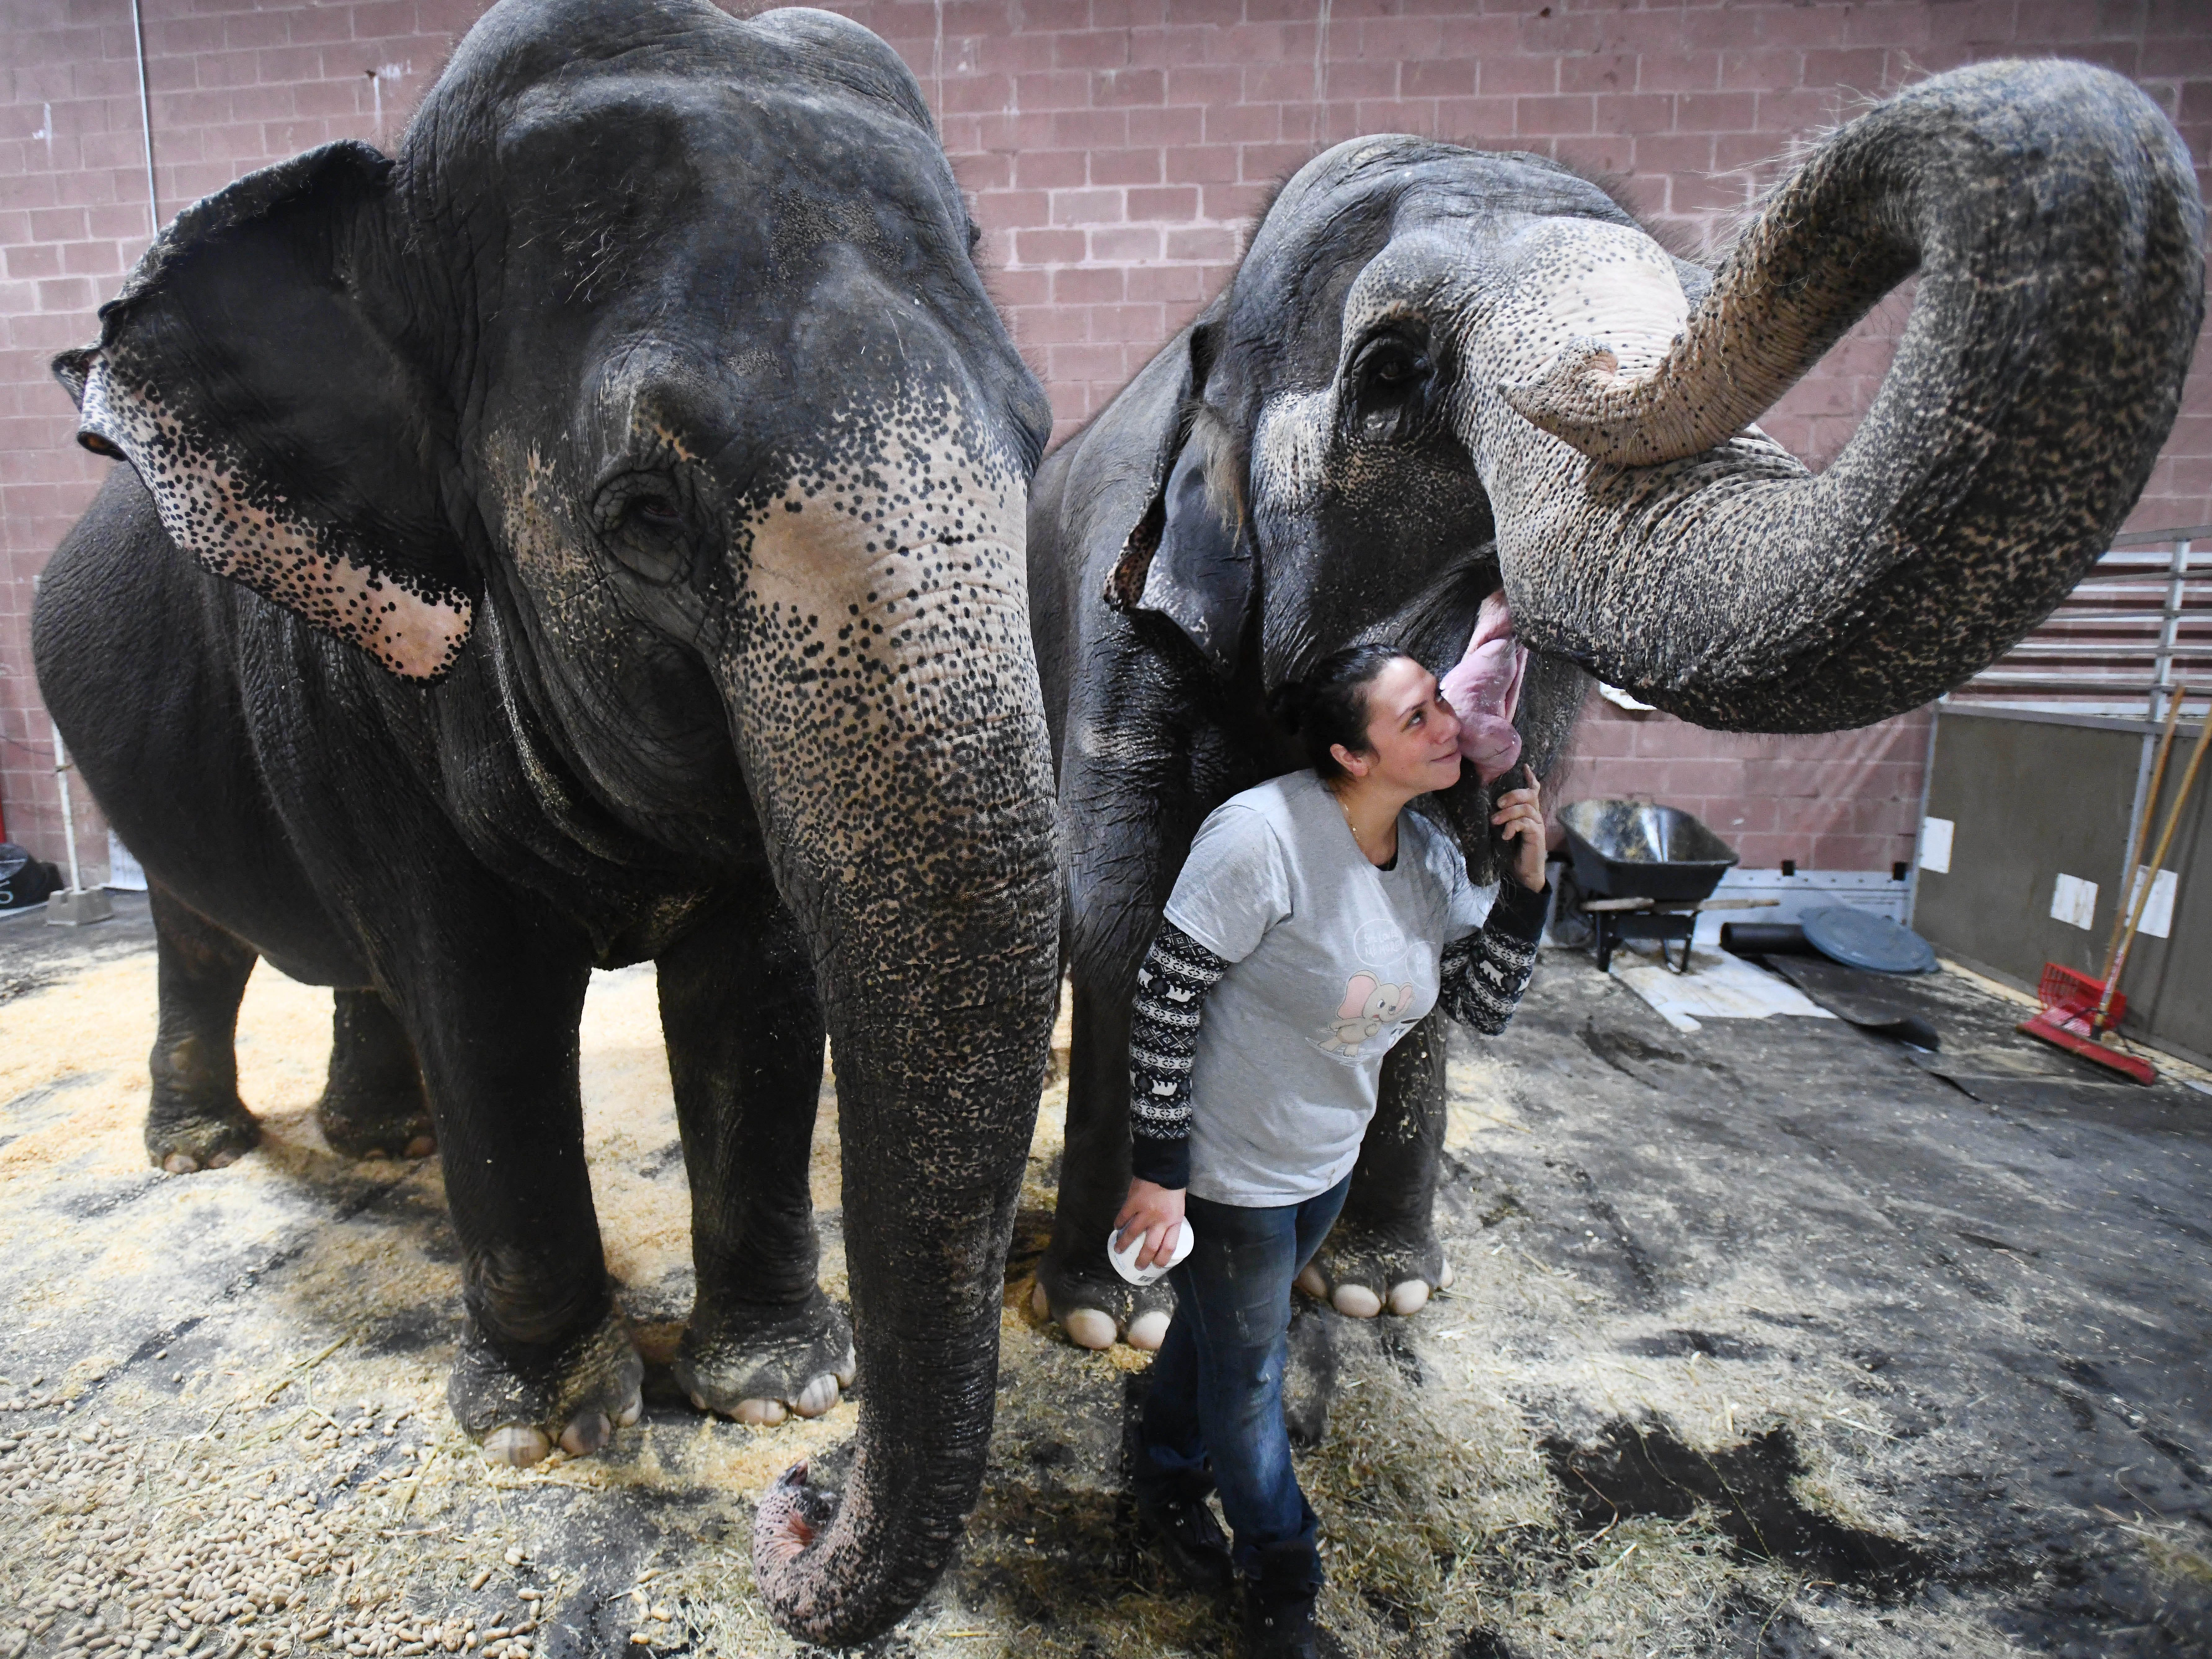 Shrine Circus trainer Jennifer Welde cuddles with Asian elephants Shelly and Marie whom the circus has had since they were babies. The Shrine Circus rolls into Novi, Michigan weekend performances at the Suburban Collection Showcase.